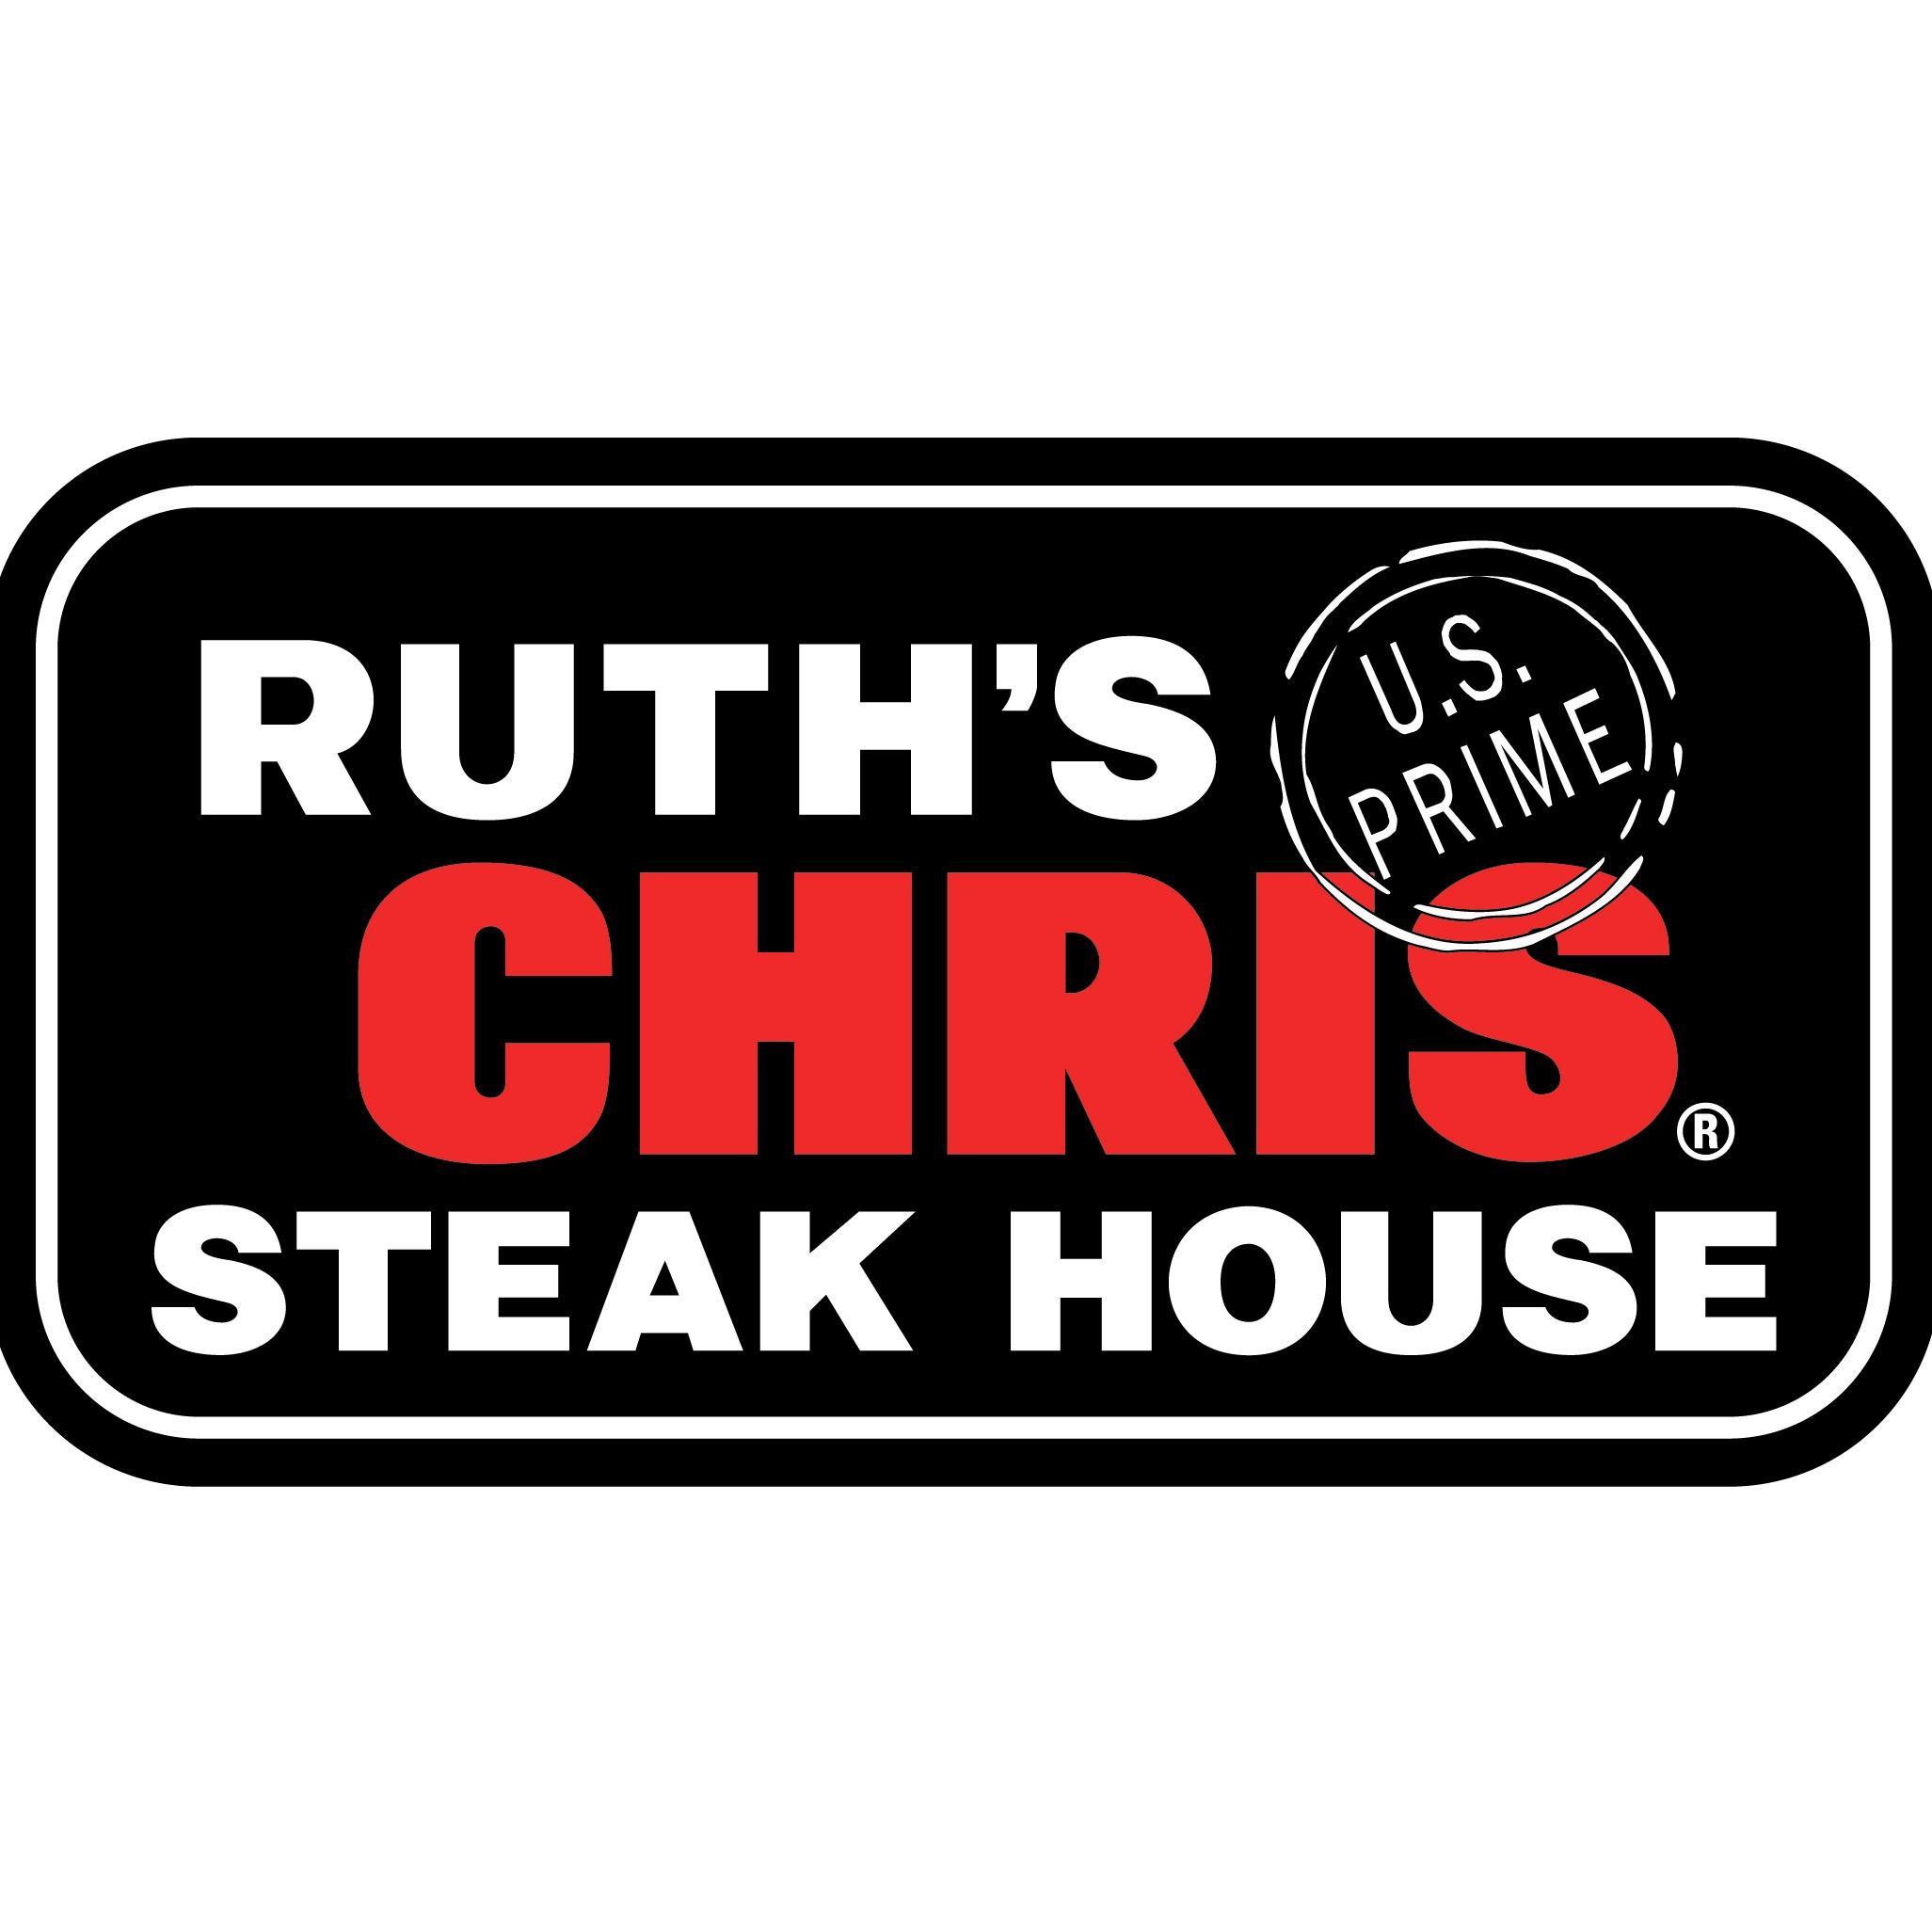 Ruth's Chris Steak House - Fort Lauderdale, FL 33305 - (954)565-2338 | ShowMeLocal.com